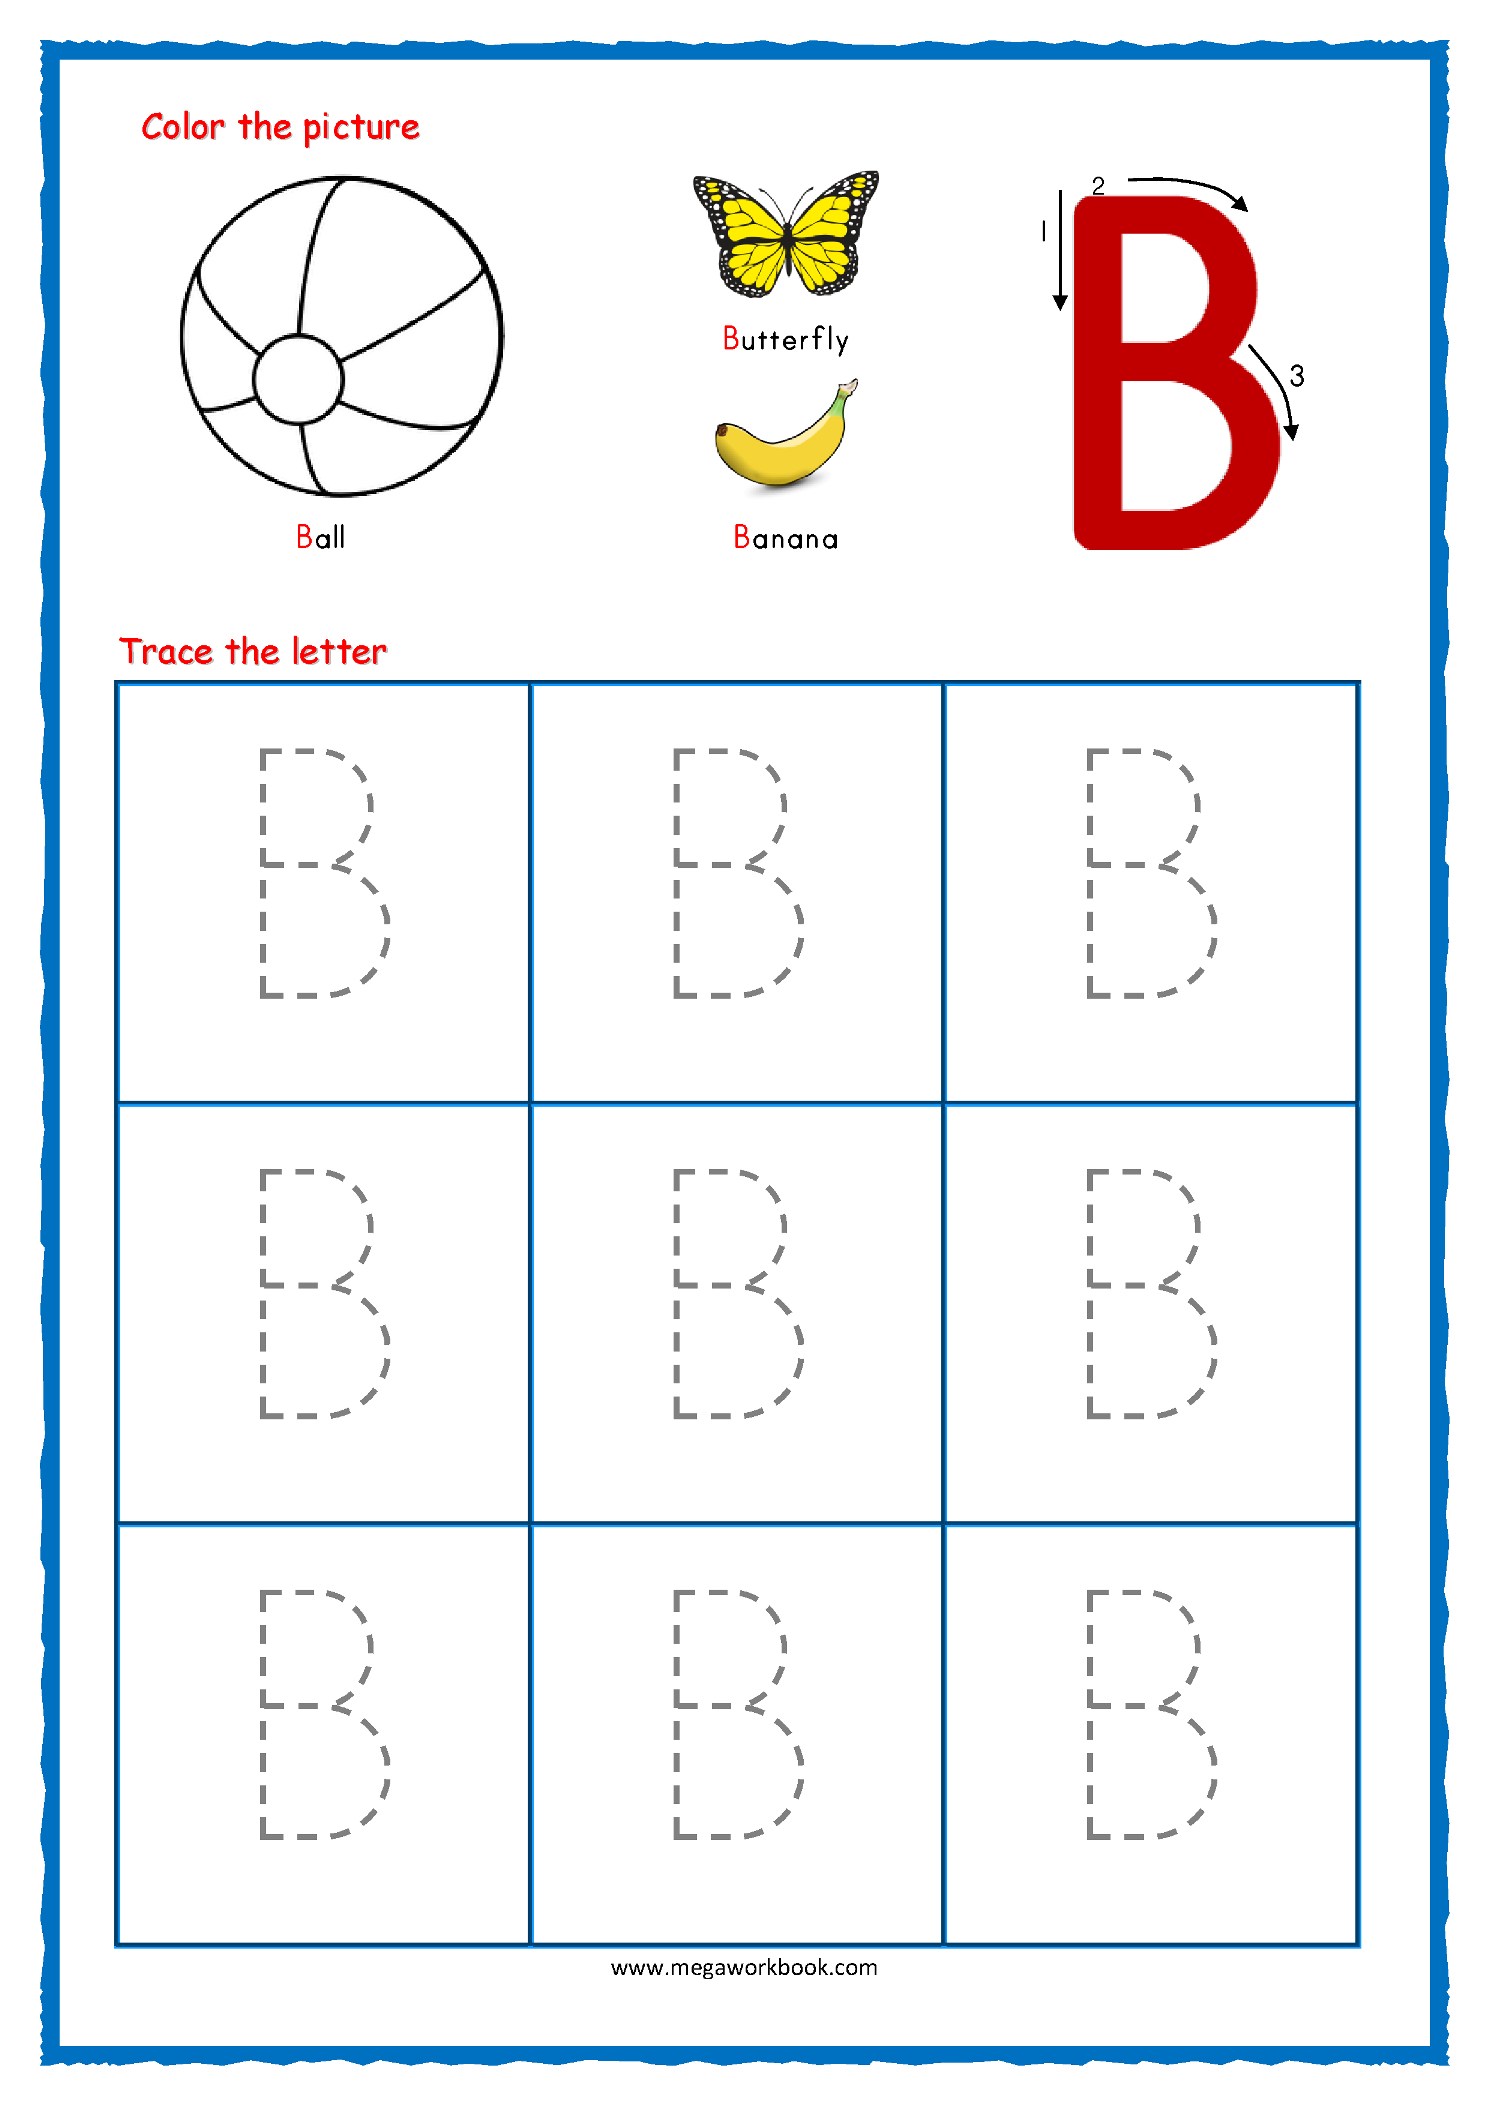 Tracing Letters - Alphabet Tracing - Capital Letters inside Alphabet Worksheets Pdf Free Download